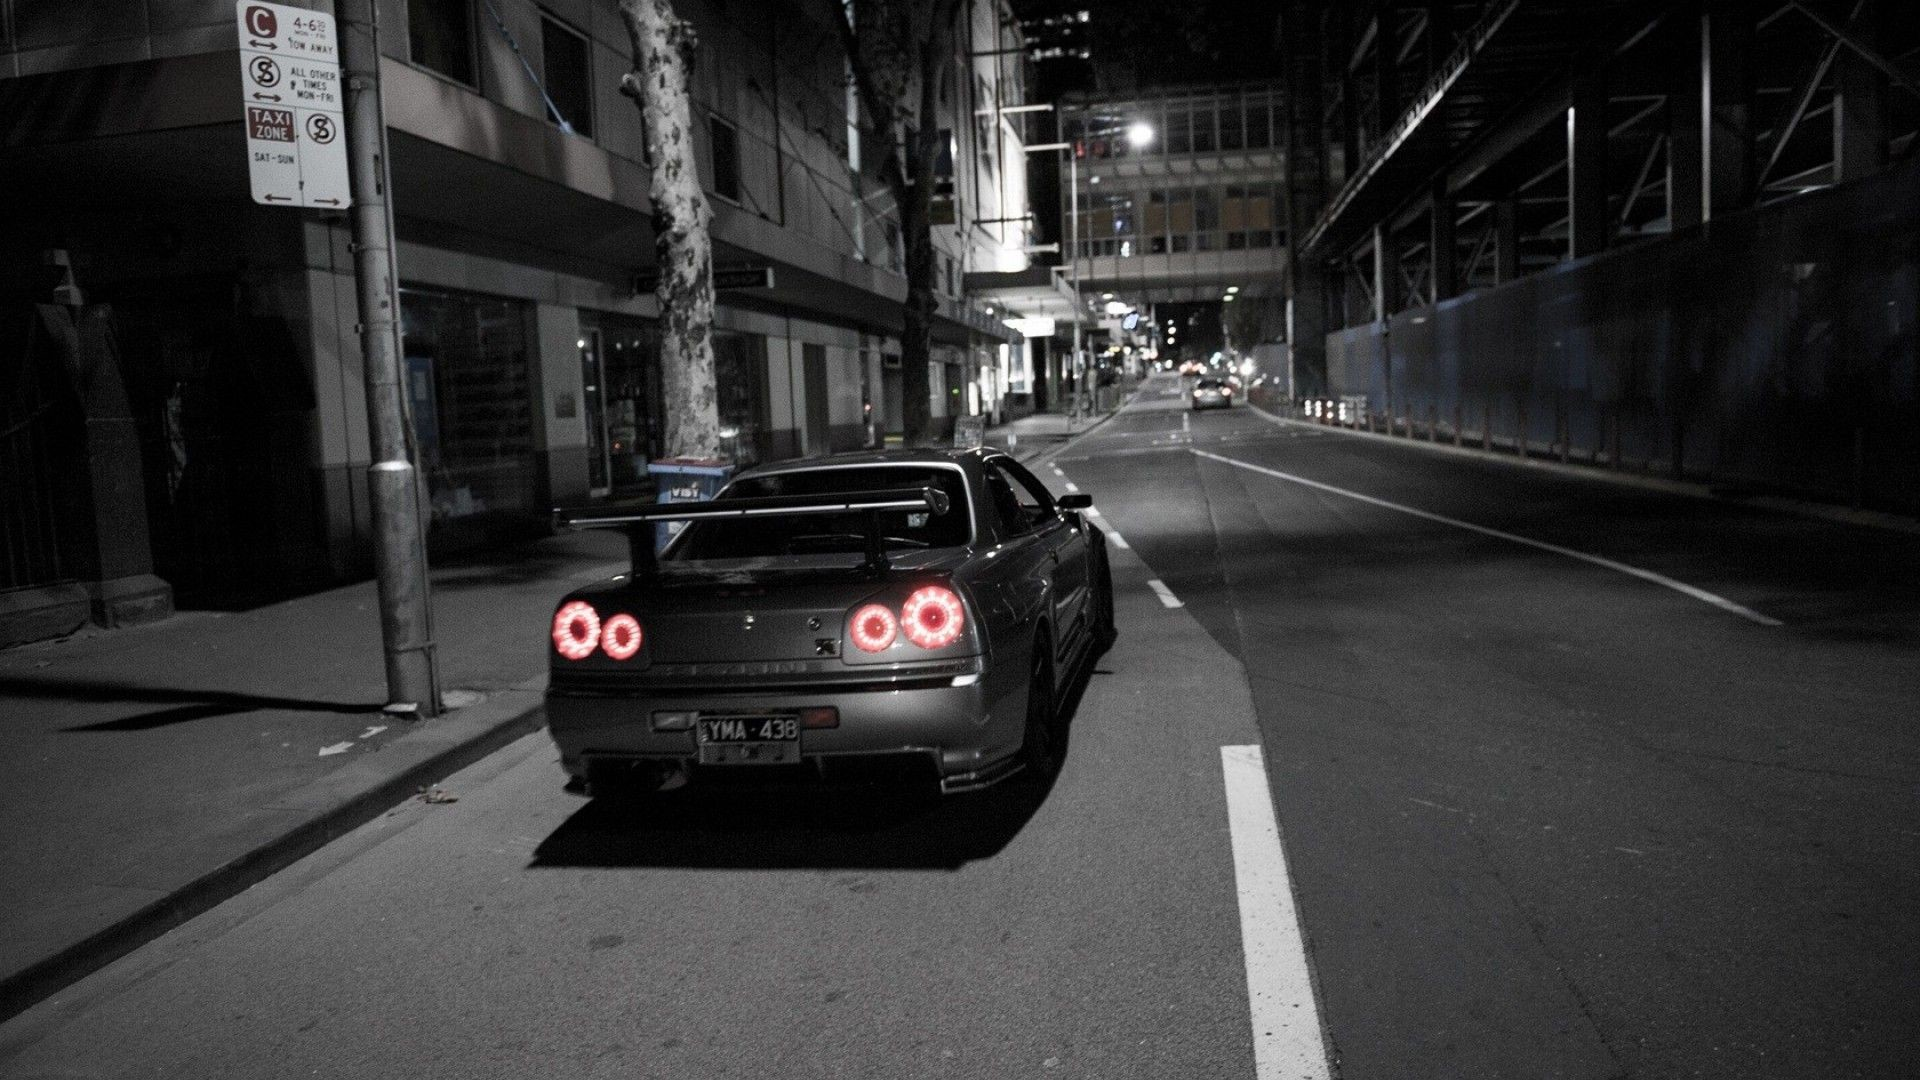 1920x1080 Nissan Skyline Gtr R34 #nissan #jdm #japan | Motoryzacja / Automotive |  Pinterest | Skyline gtr r34, Gtr r34 and Skyline GTR